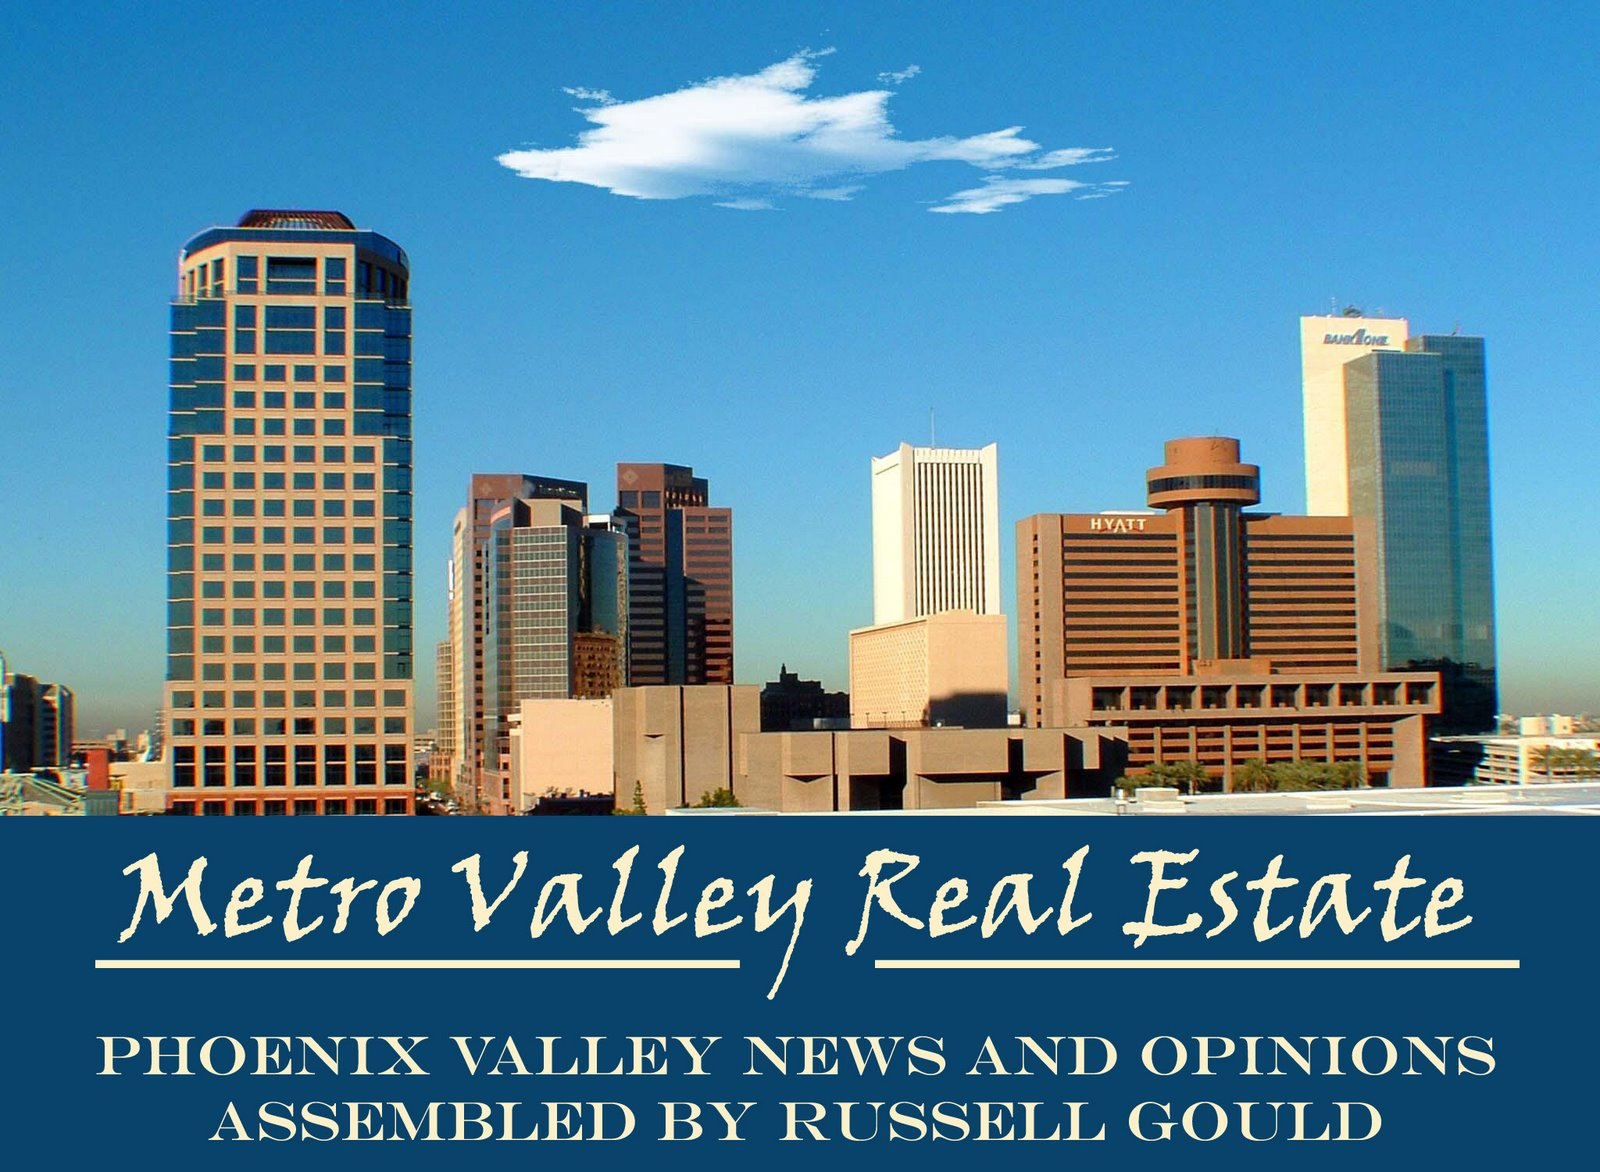 Metro Valley Real Estate